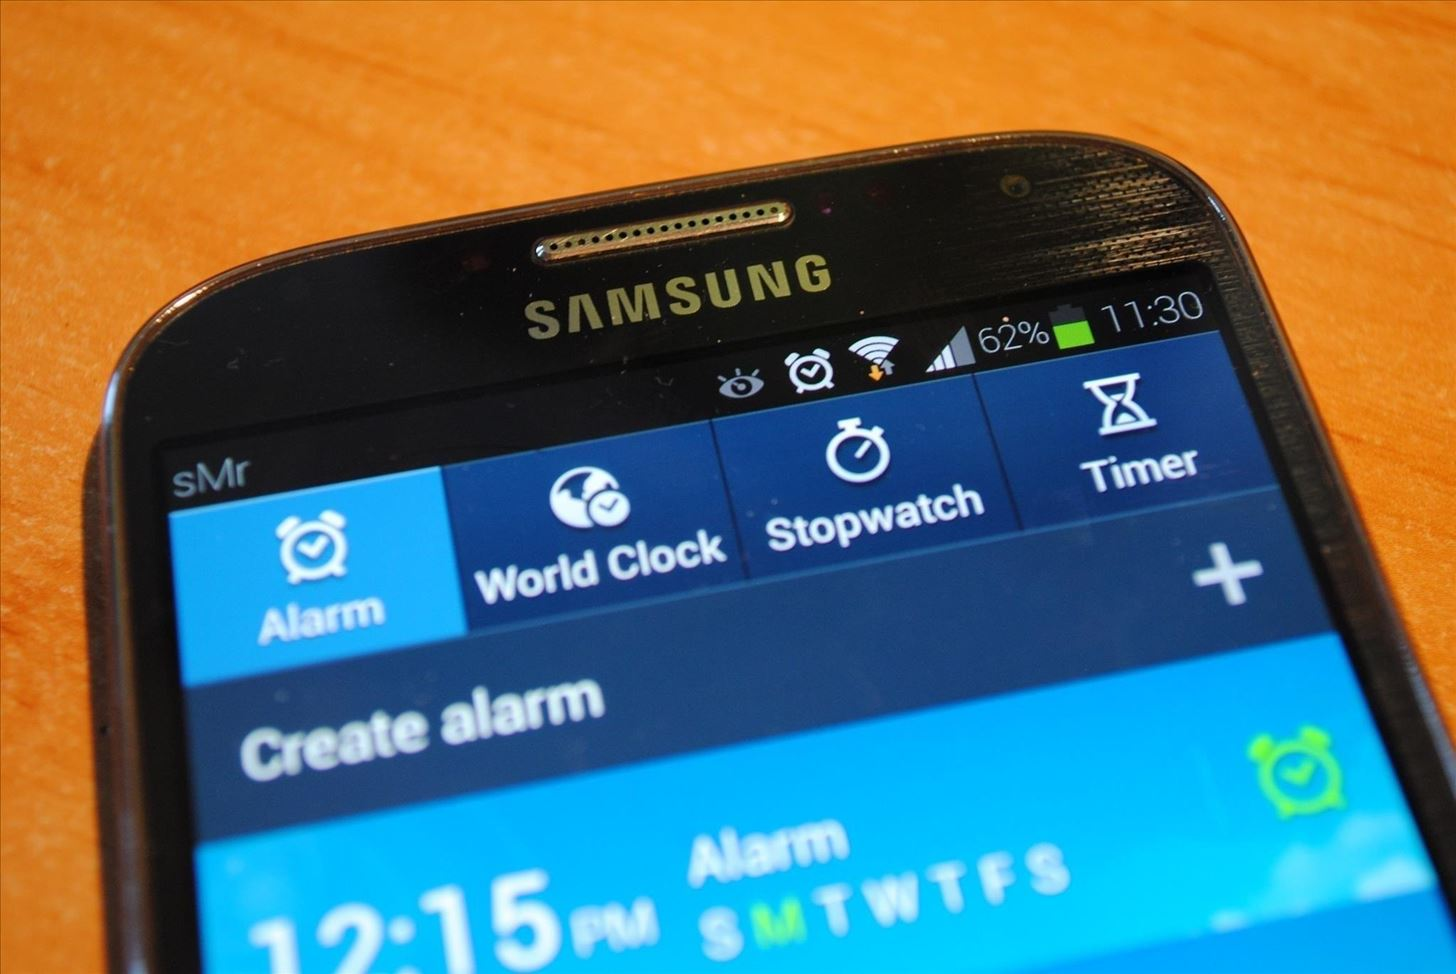 How to control when the alarm icon shows up in the status bar on how to control when the alarm icon shows up in the status bar on your samsung galaxy s4 samsung gs4 gadget hacks buycottarizona Images